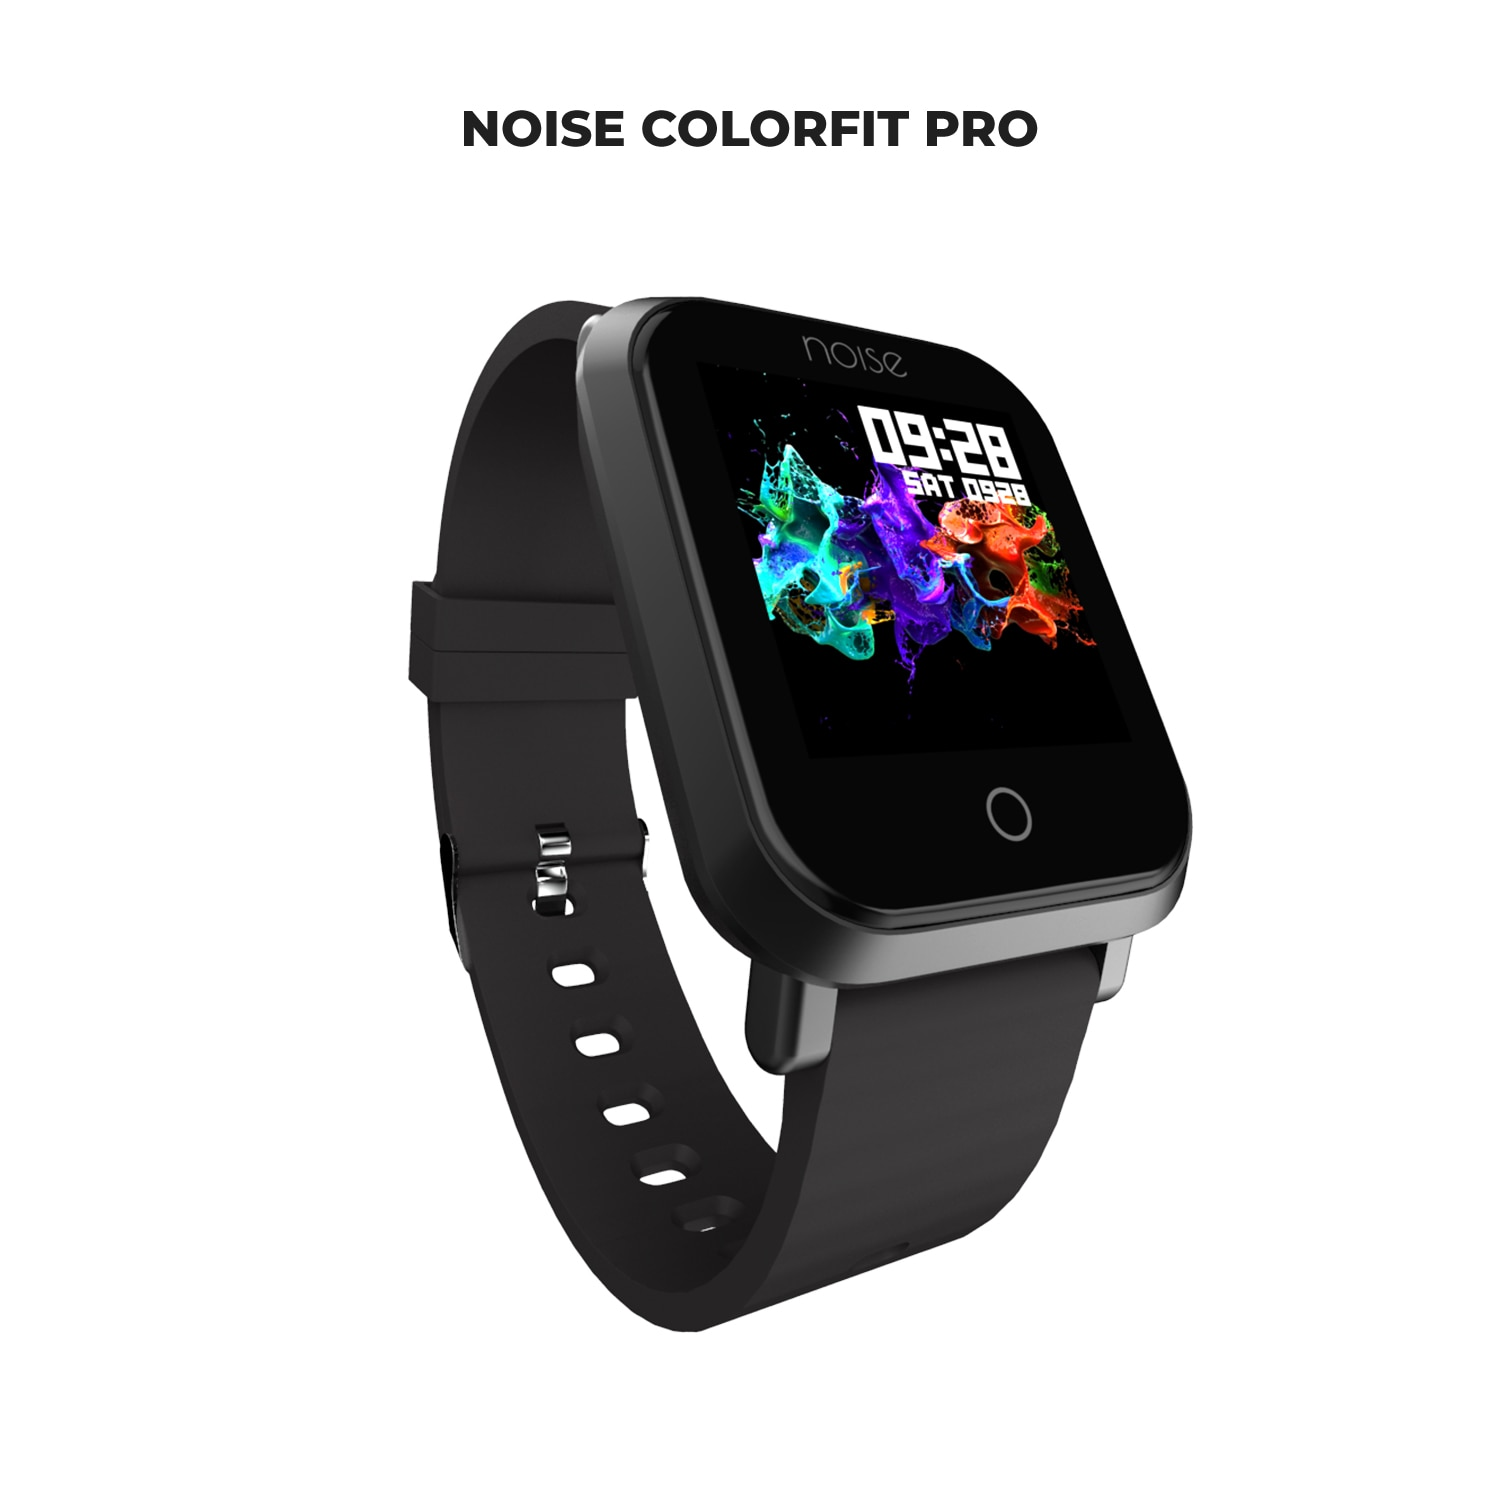 Noise ColorFit Pro Smartwatch - Classic Jet Black | Bluetooth Smart Band with Detachable Strap | Wide Screen Waterproof | Sports and Activity Tracker | Camera and Music Control Features